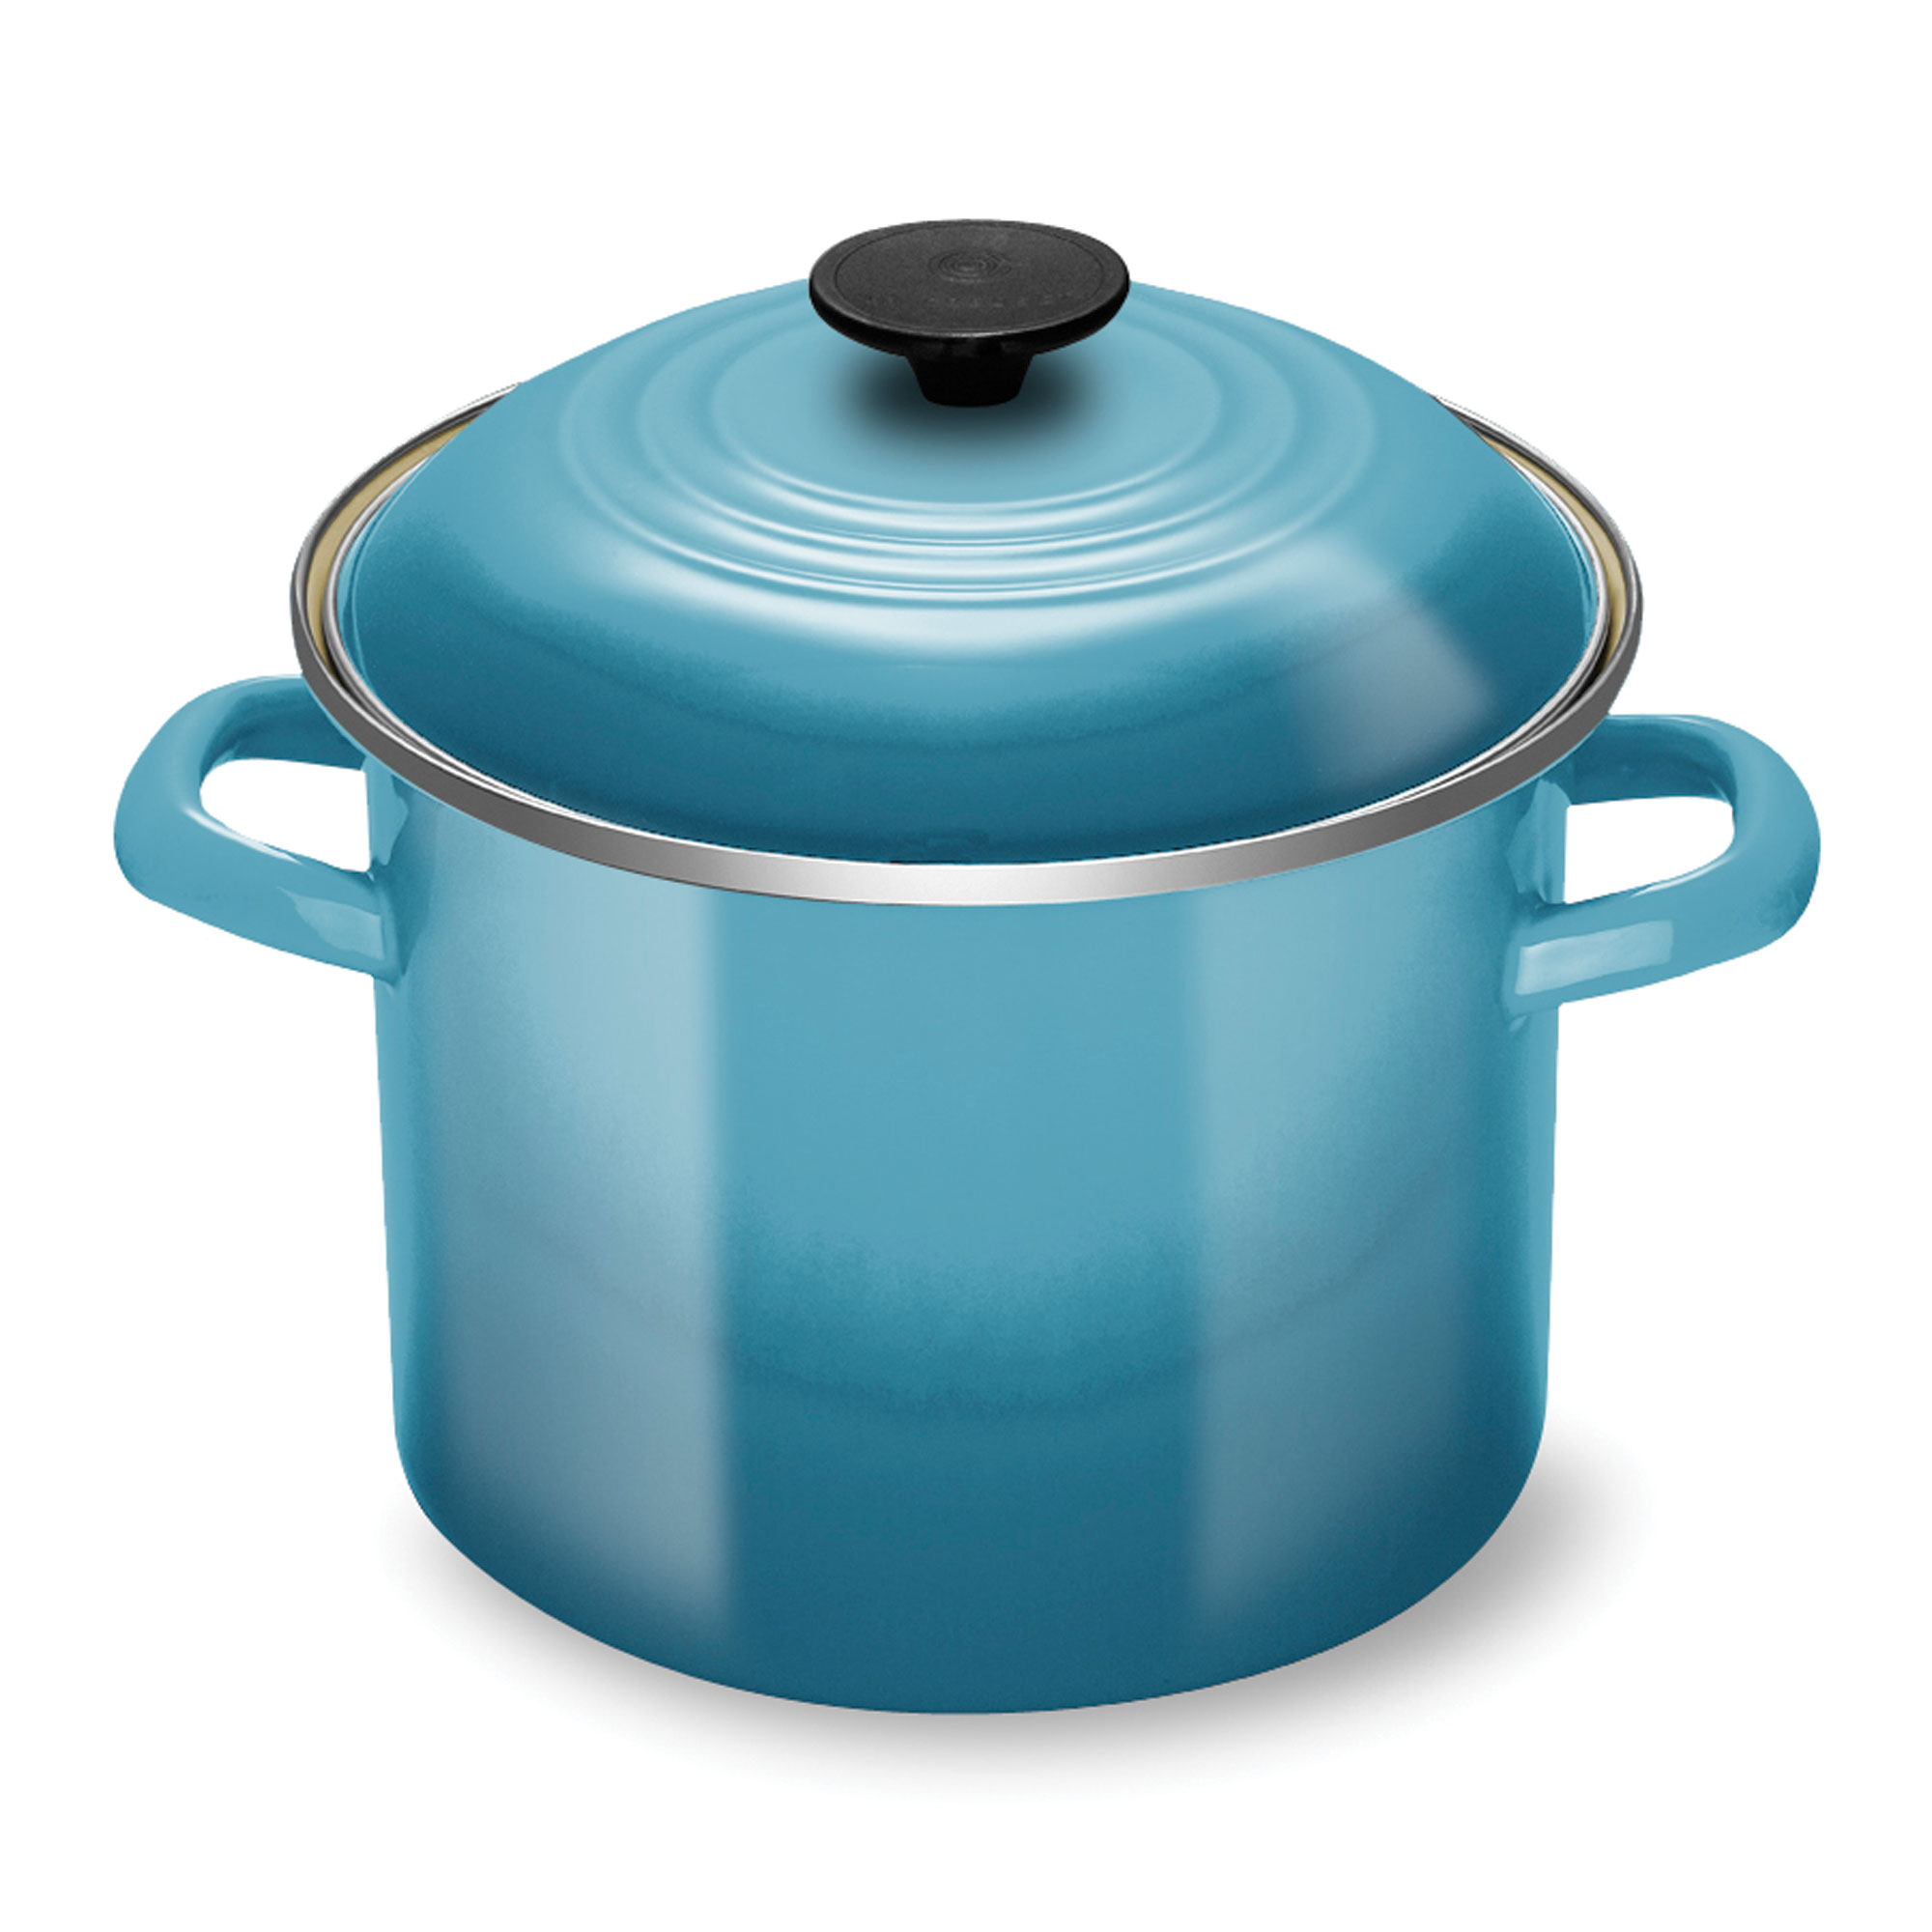 Le Creuset Enameled Steel Stock Pot 6 Quart Caribbean